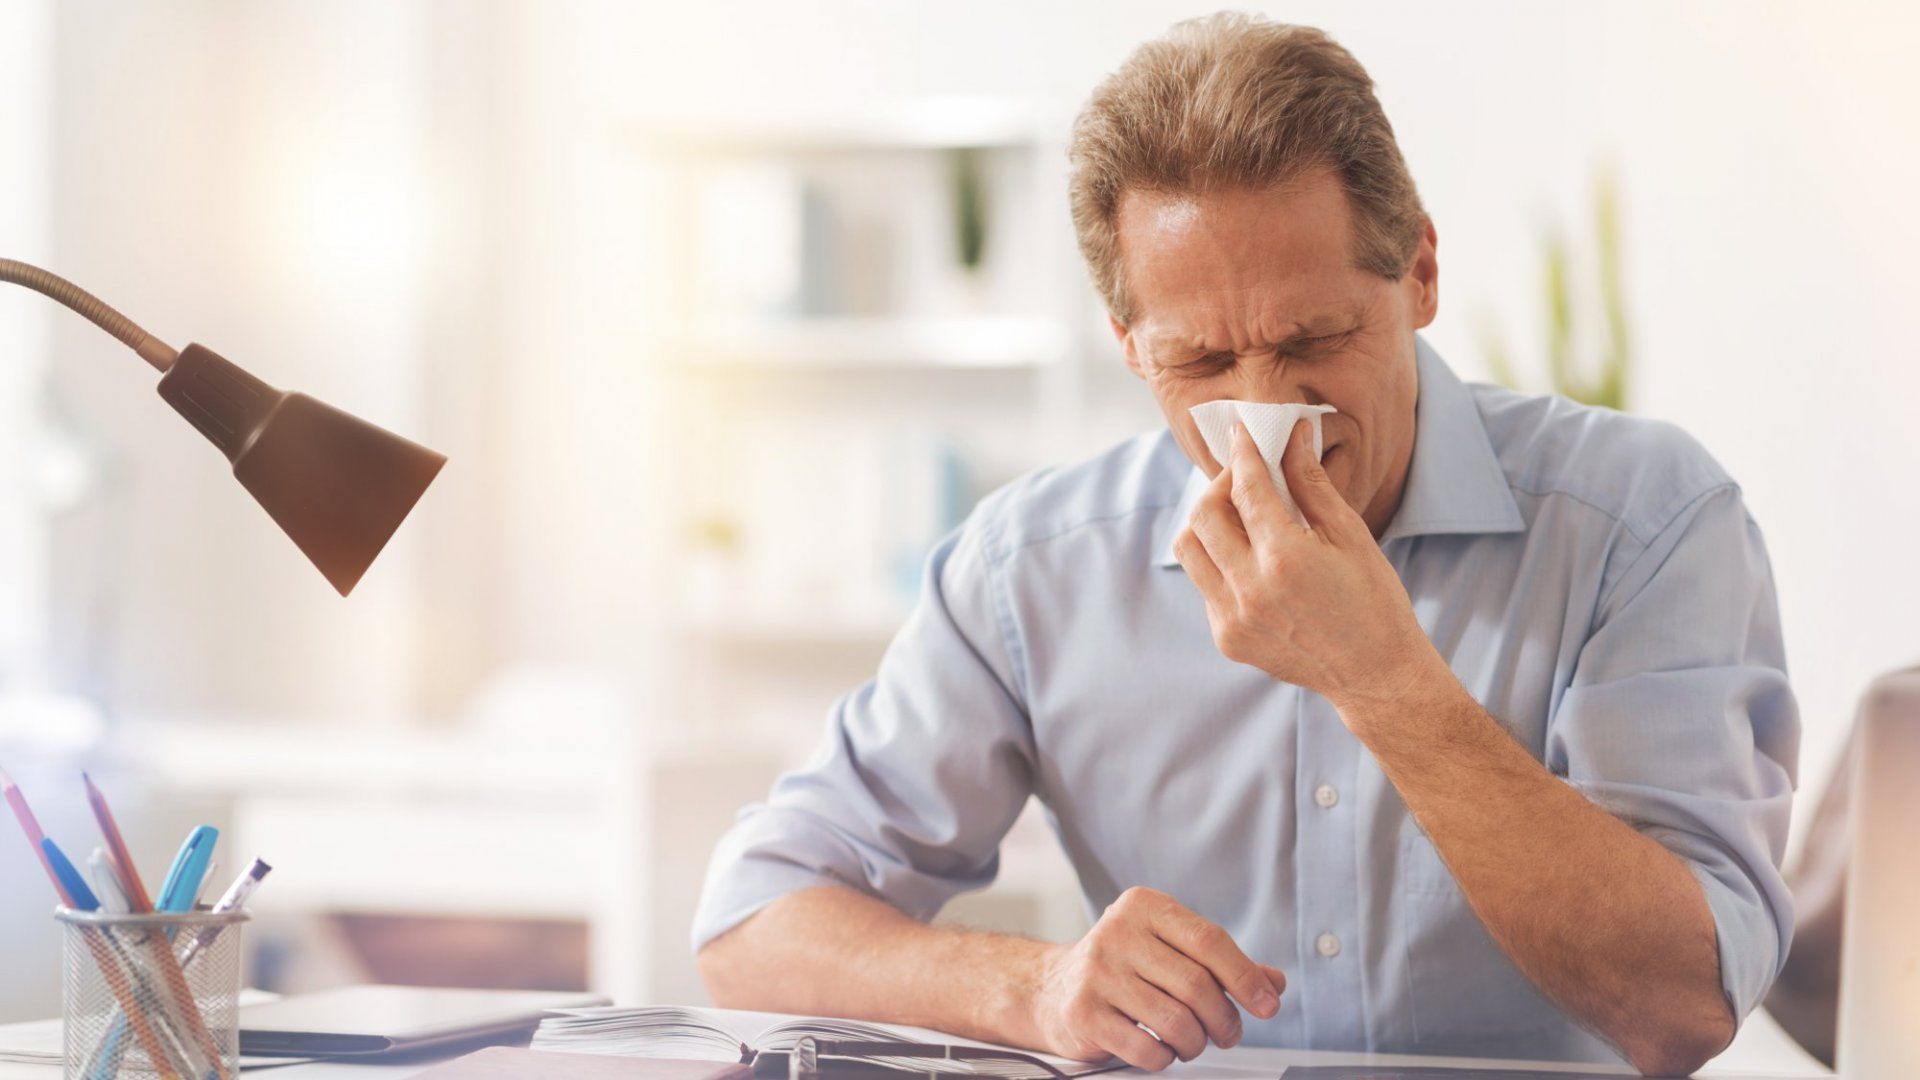 Going Into Work Even Though You're Sick? You Might Deservedly Get 'Sick Shamed'